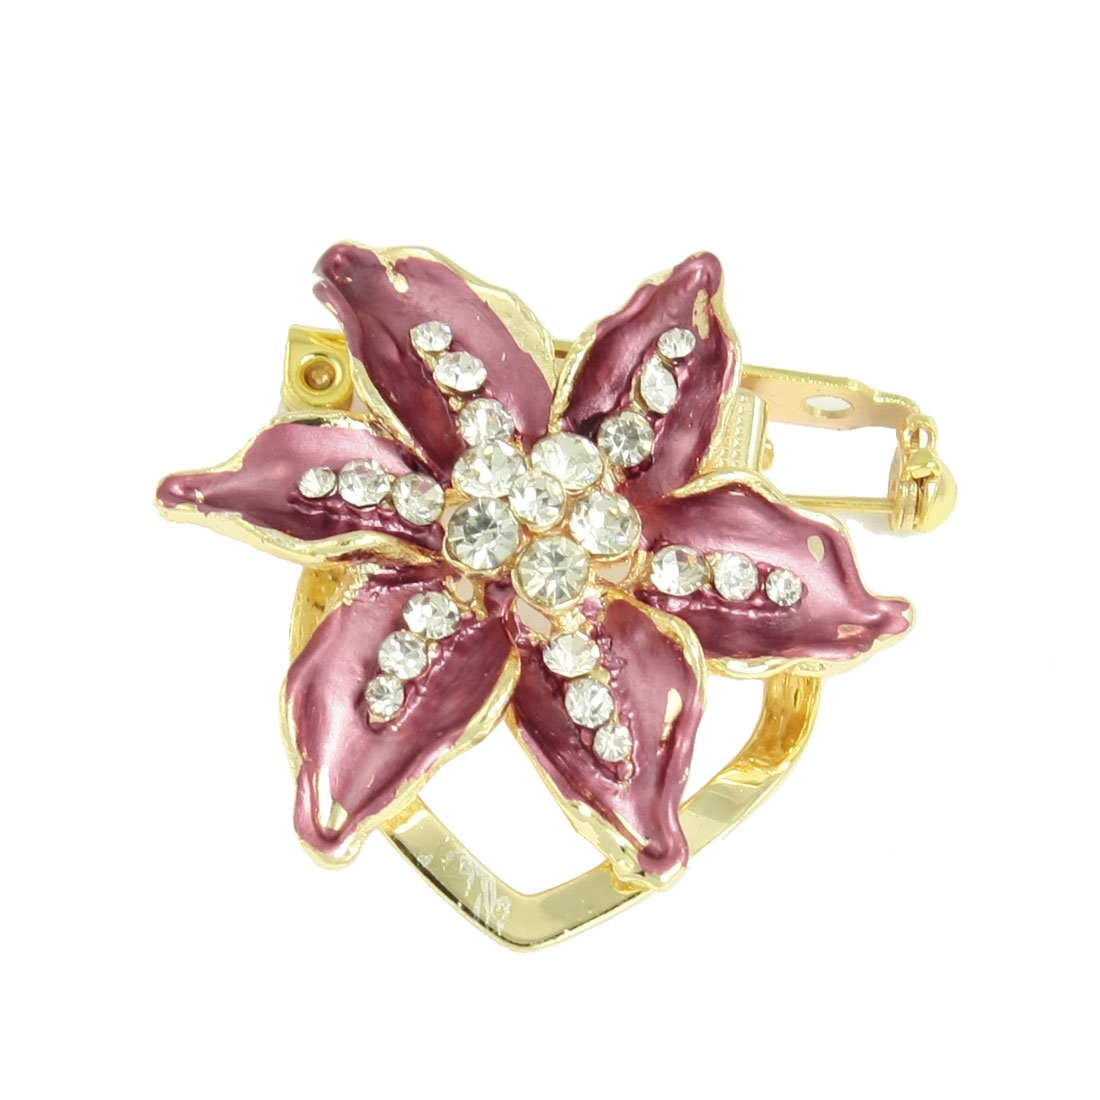 Burgundy Gold Tone Metal Flower Style Rhinestone Inlaid Pin Brooch